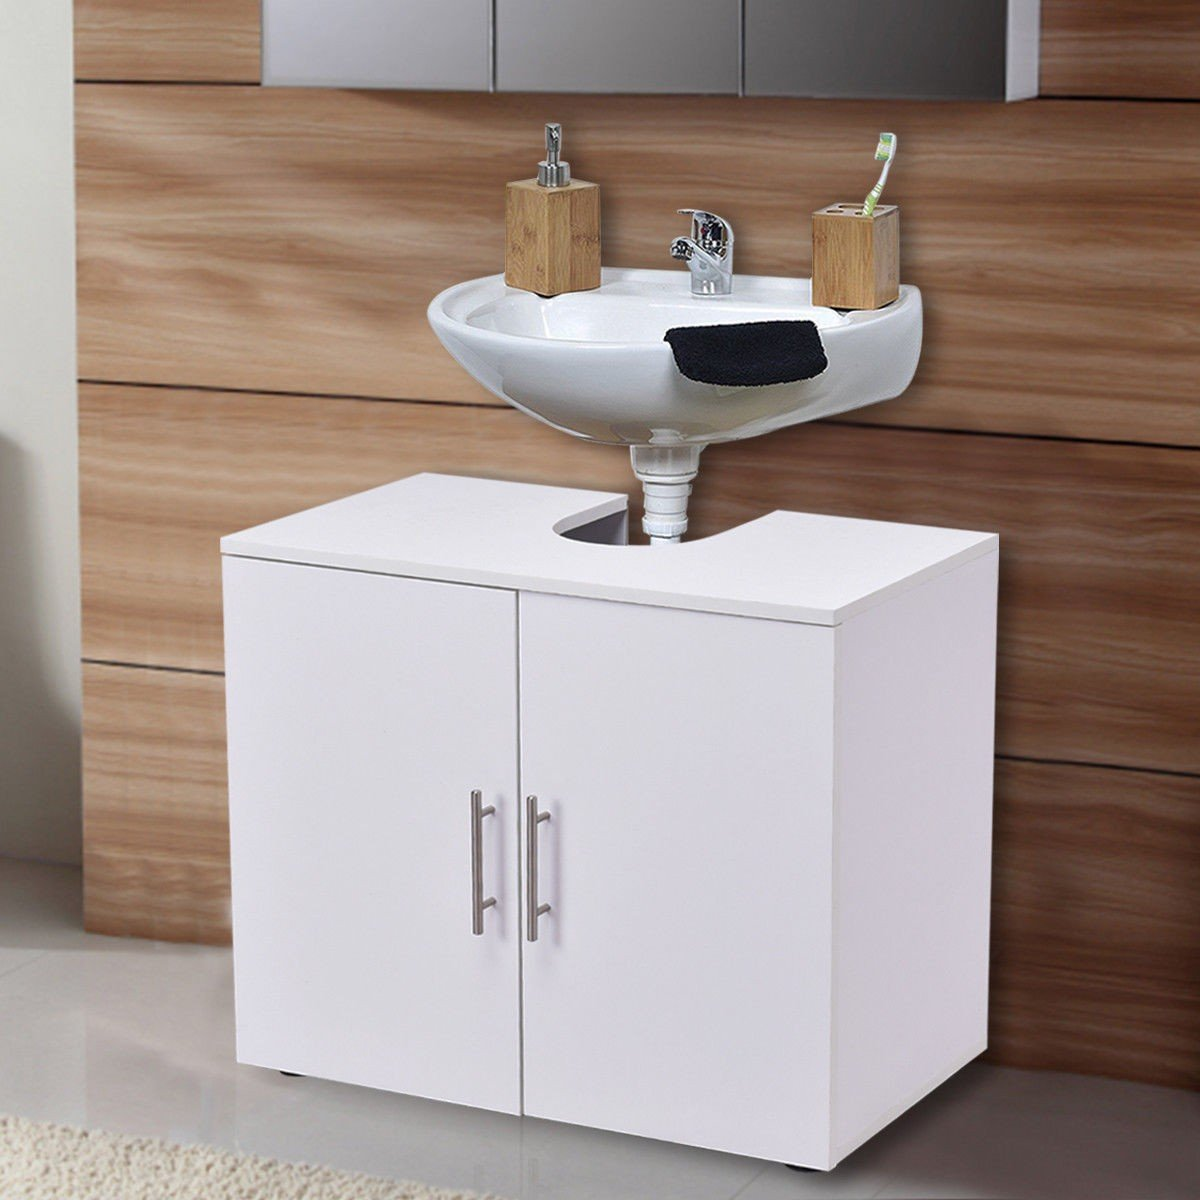 Storage Vanity Cabinet Bathroom Non Pedestal Under Sink Wall Mounted White Wood Furniture MD Group by MD Group (Image #2)